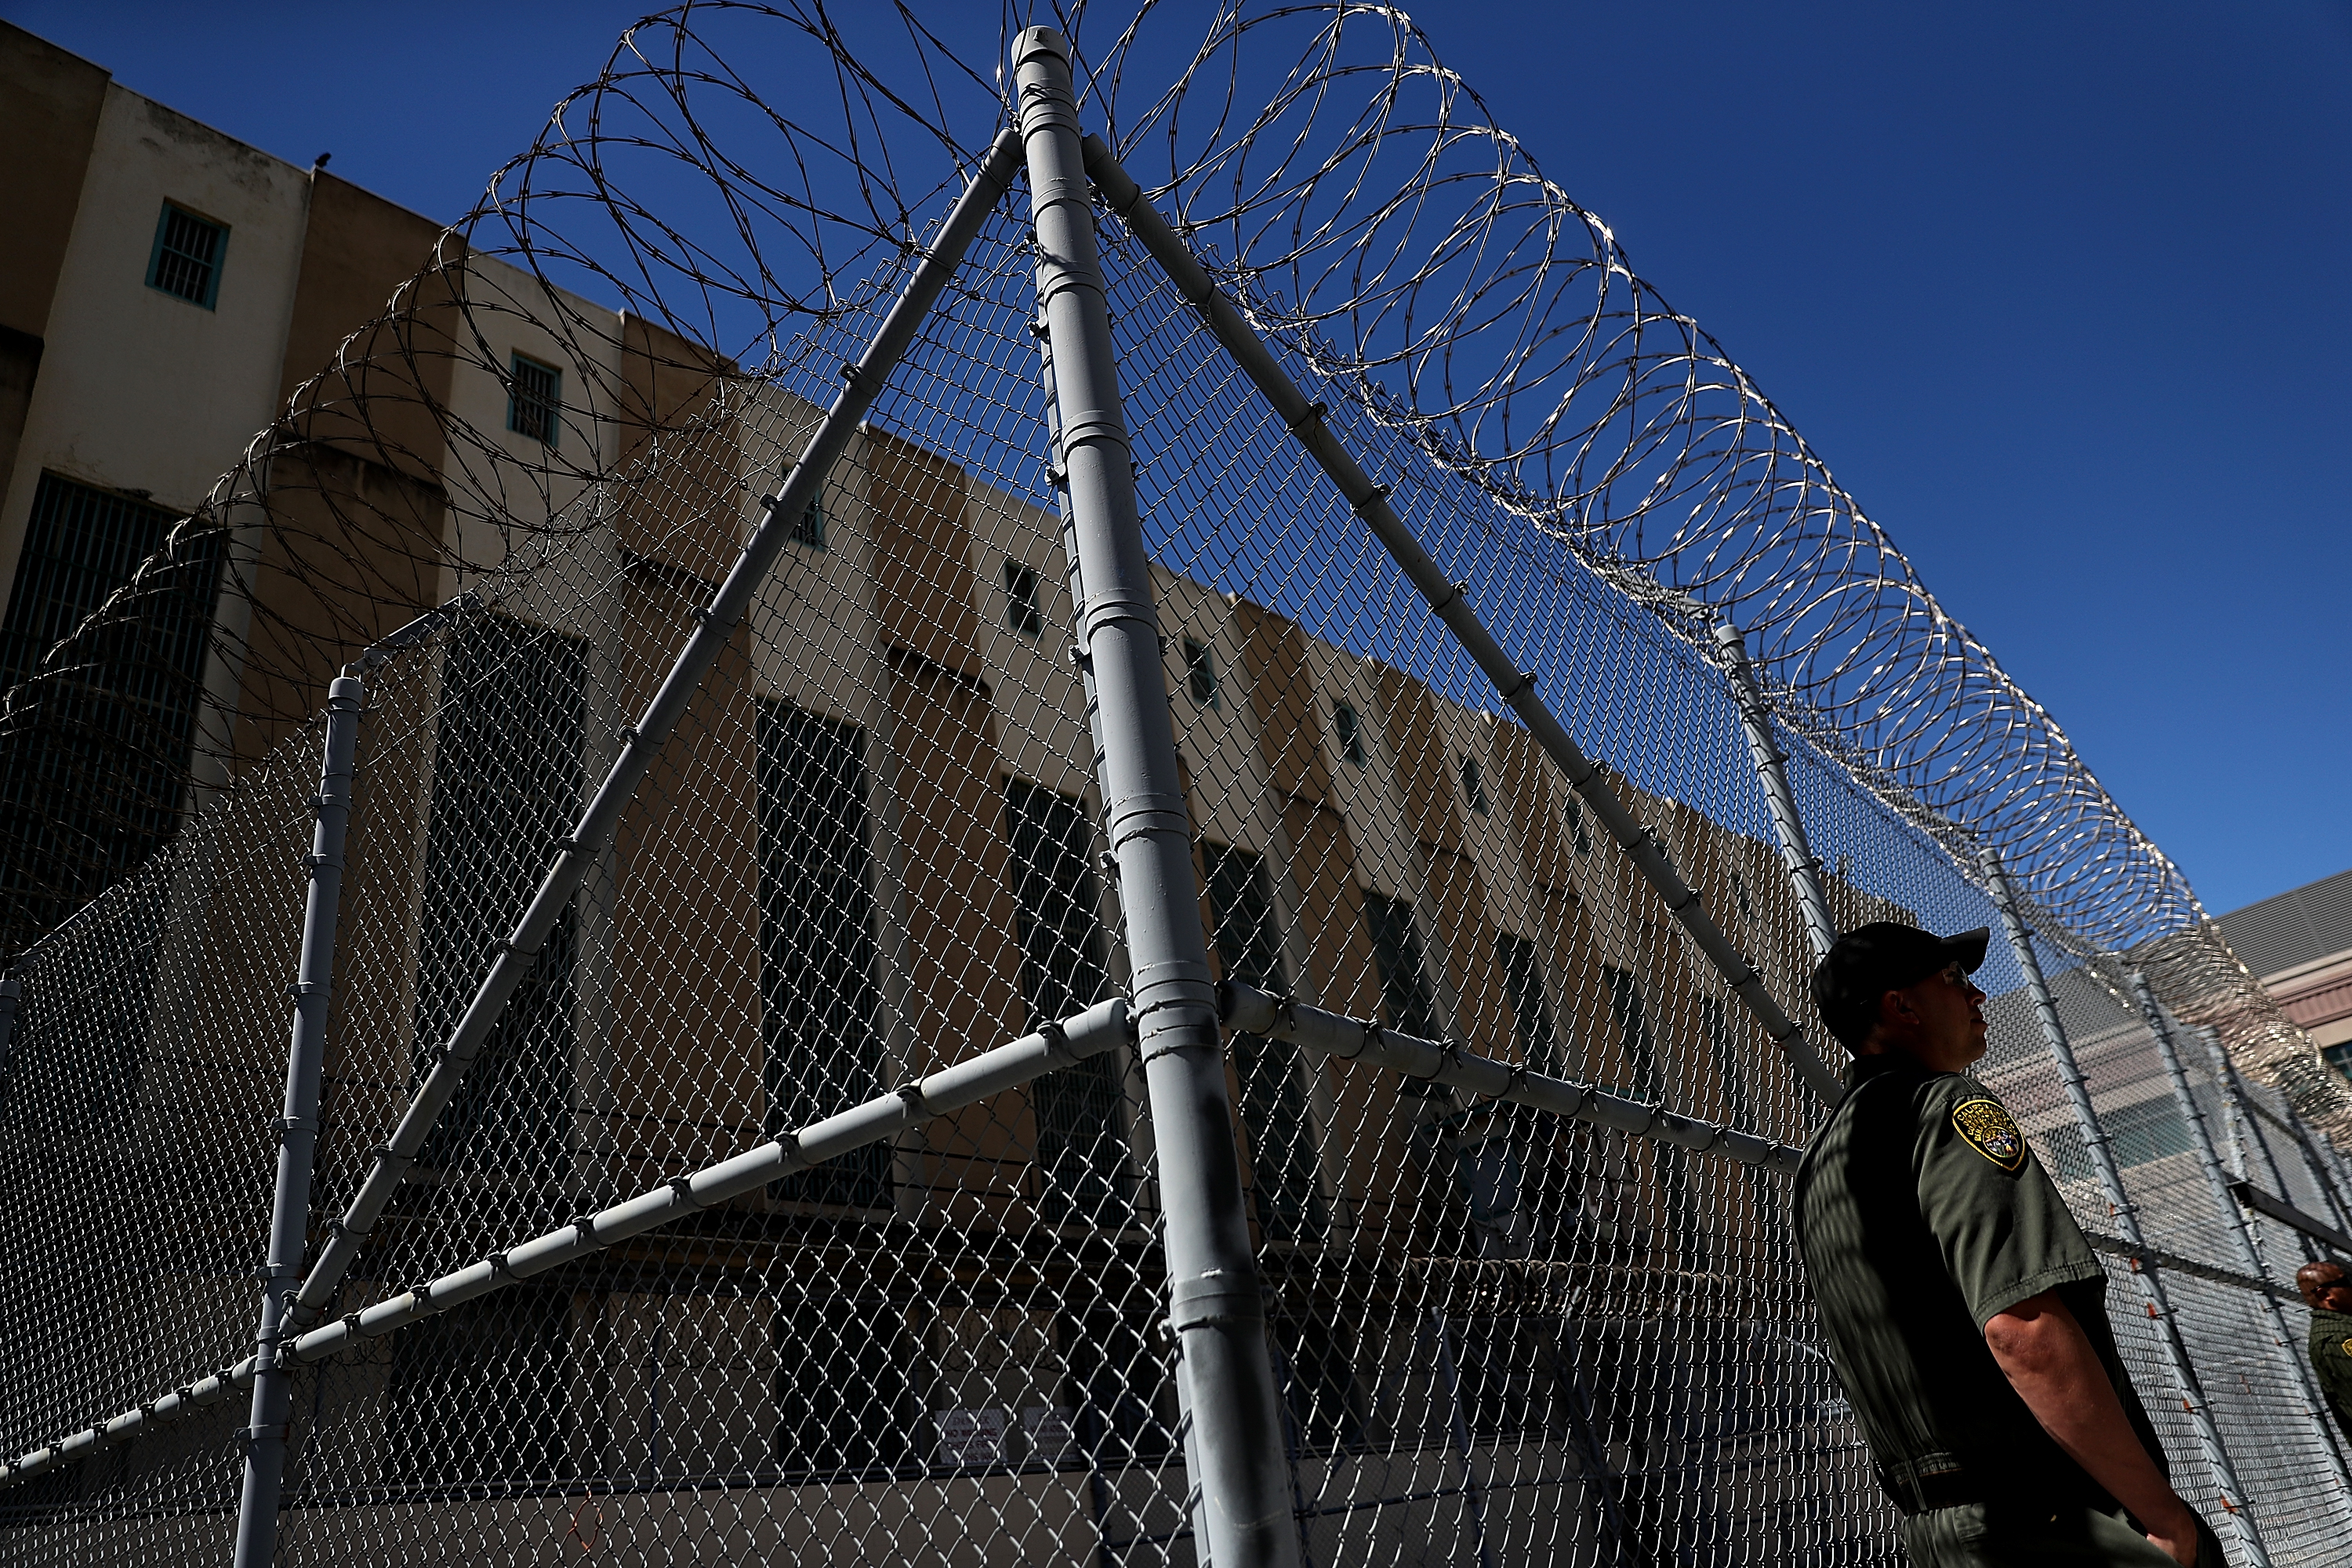 Prison Workers Are Warning Of Possible 'Escapes' As Government Shutdown Continues